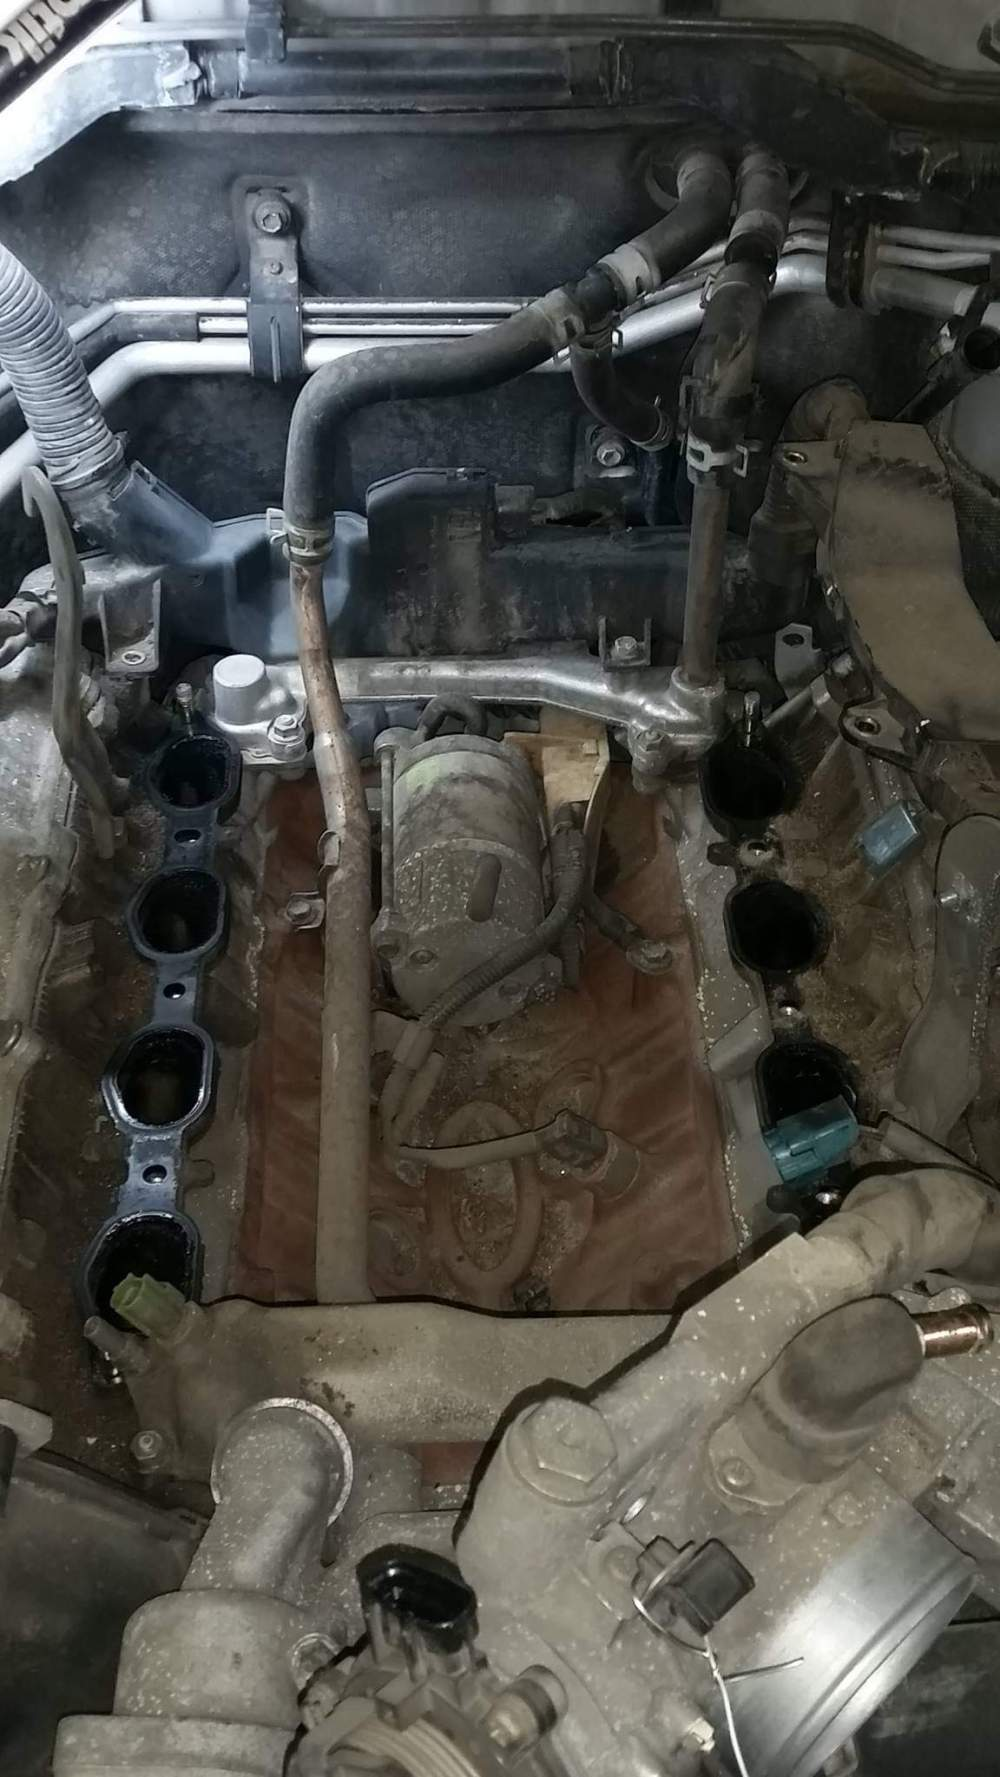 medium resolution of shout out to the engineers at toyota let s place the starter under the intake manifold where it s hot as fuck and impossible to access